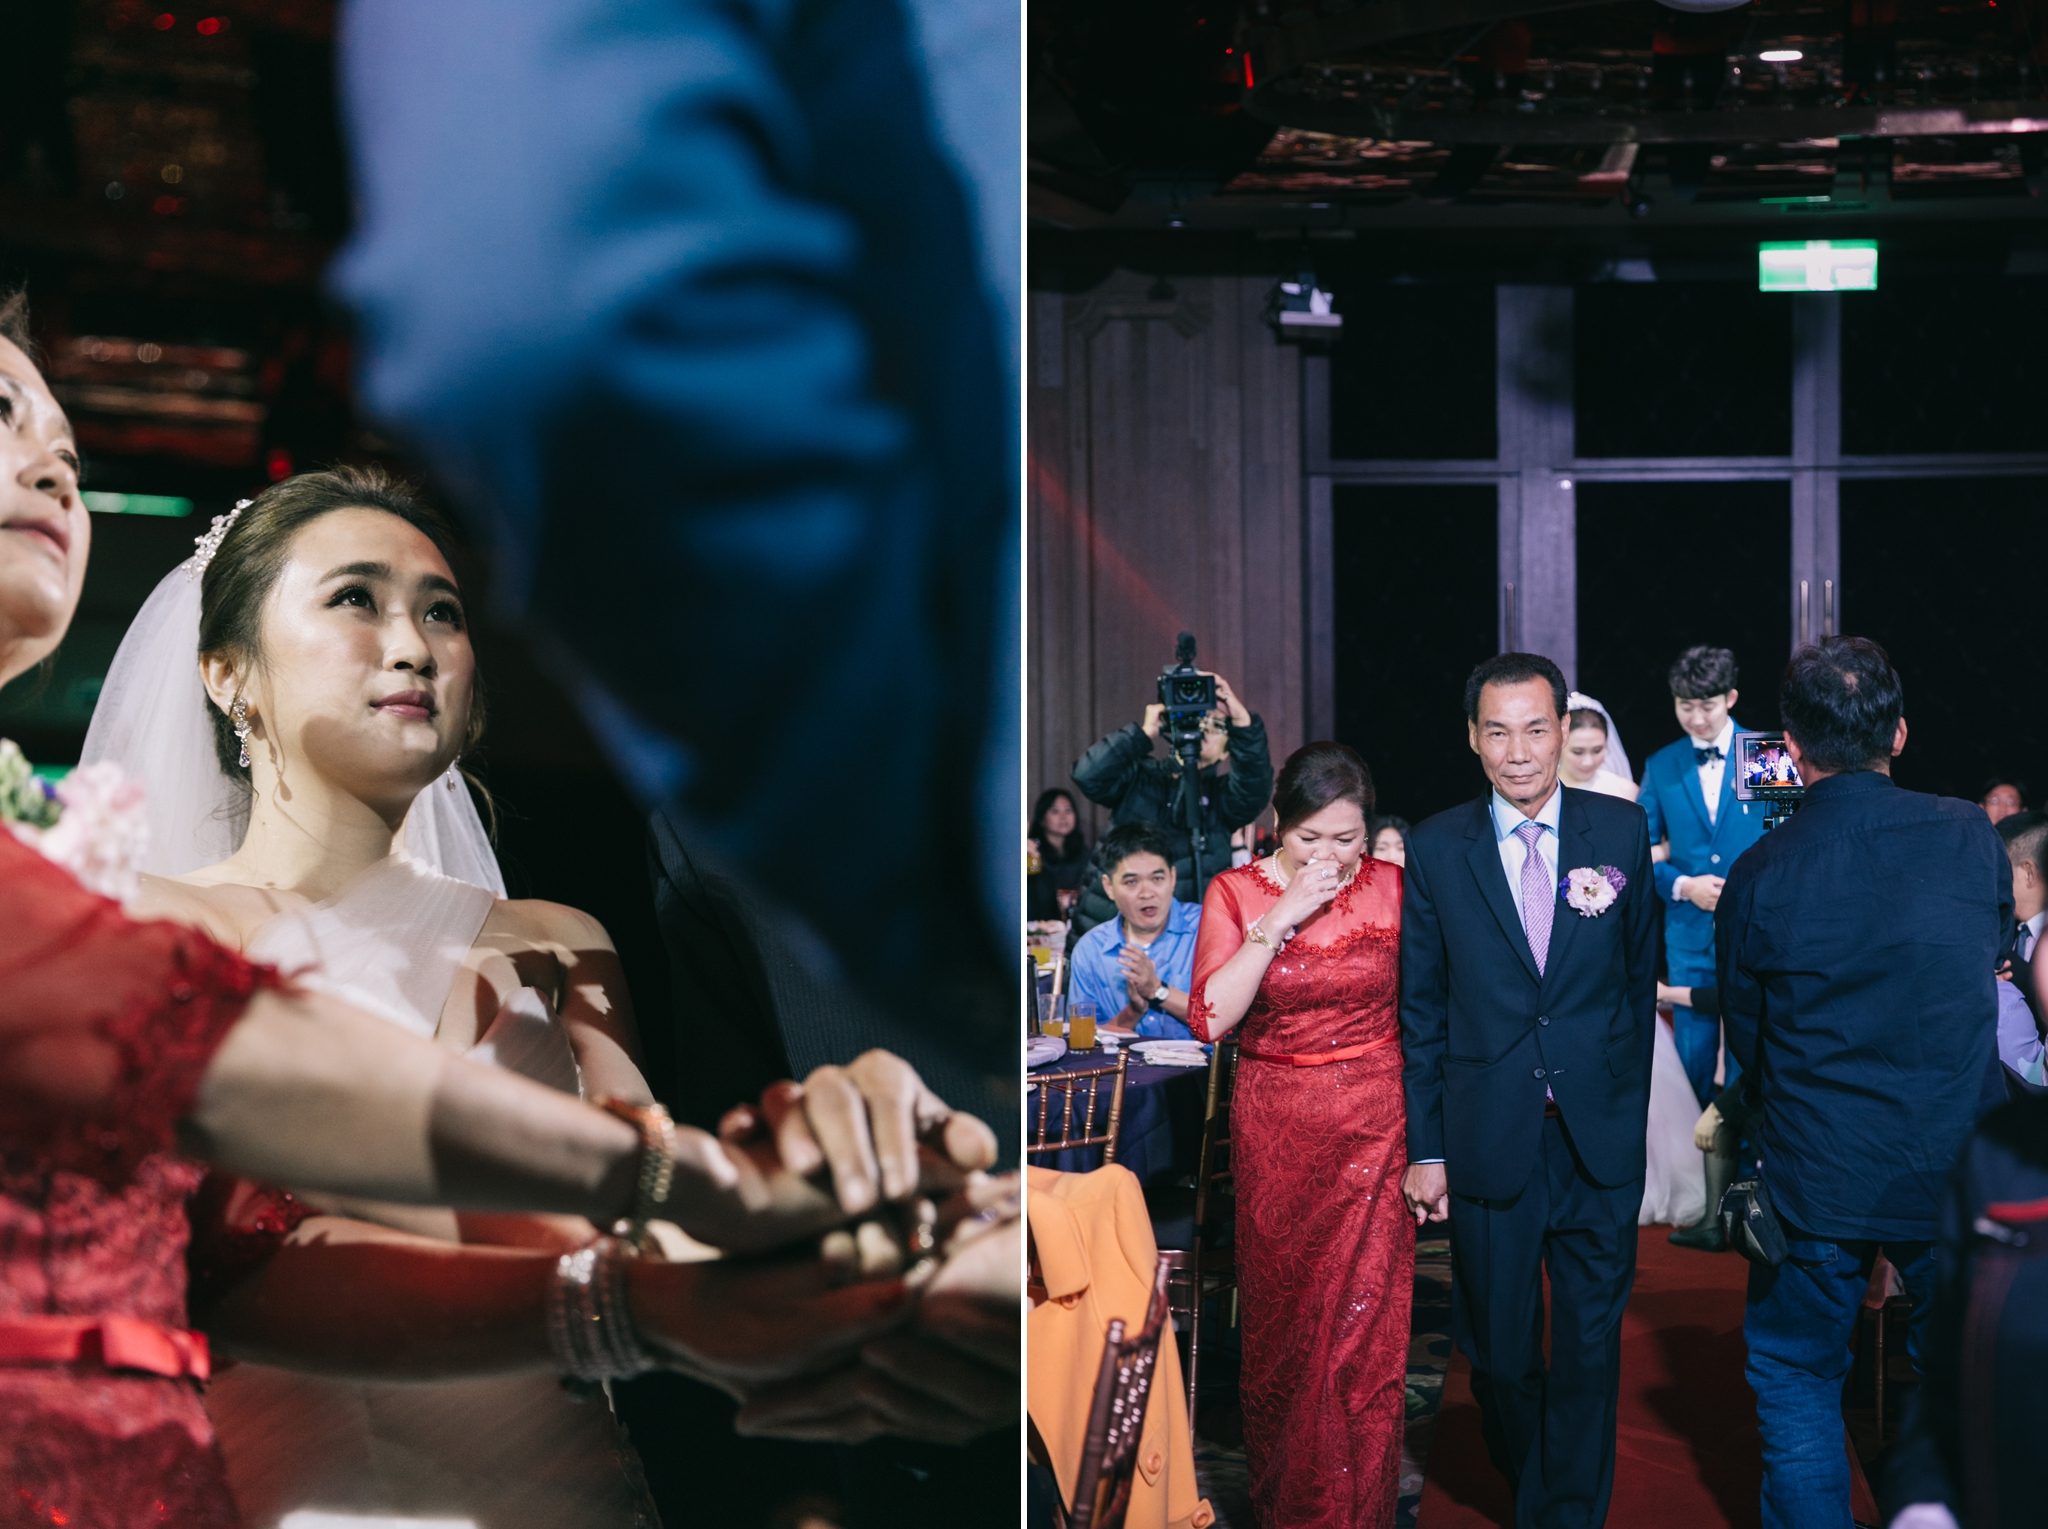 Keddy+Richard-wedding-新莊頤品飯店-184.jpg